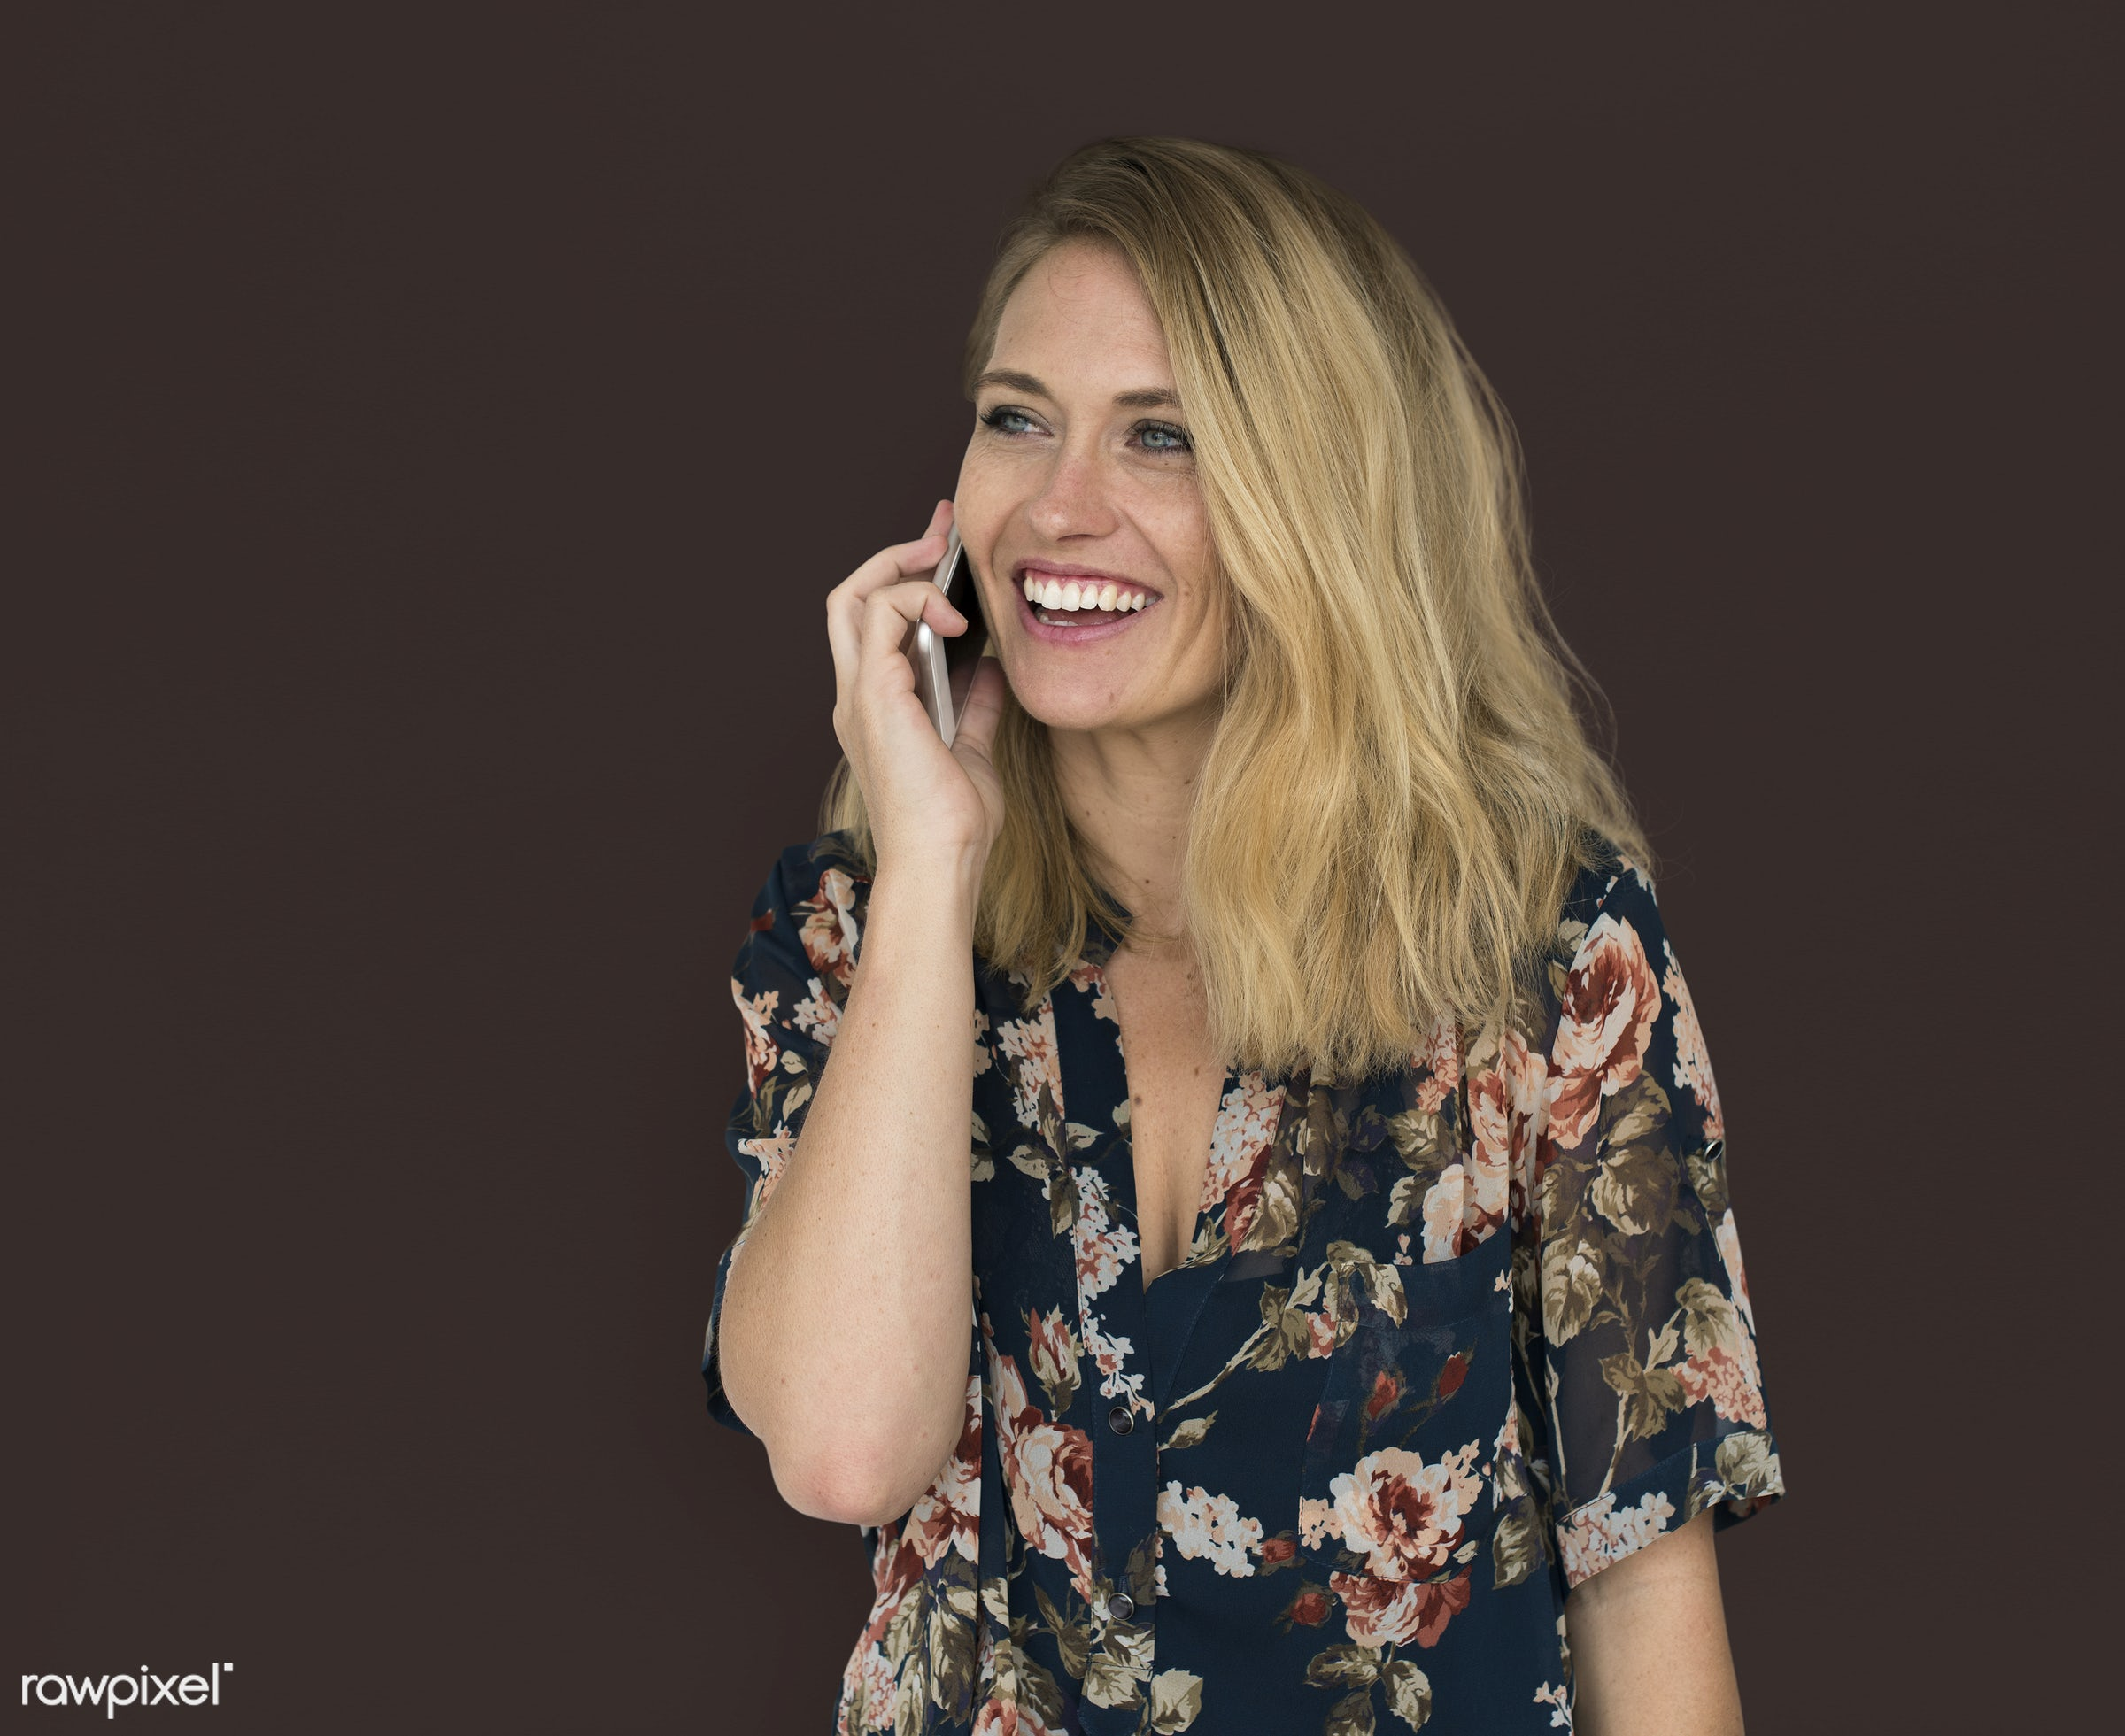 studio, expression, phone, person, technology, people, caucasian, woman, lifestyle, positive, smile, cheerful, isolated,...